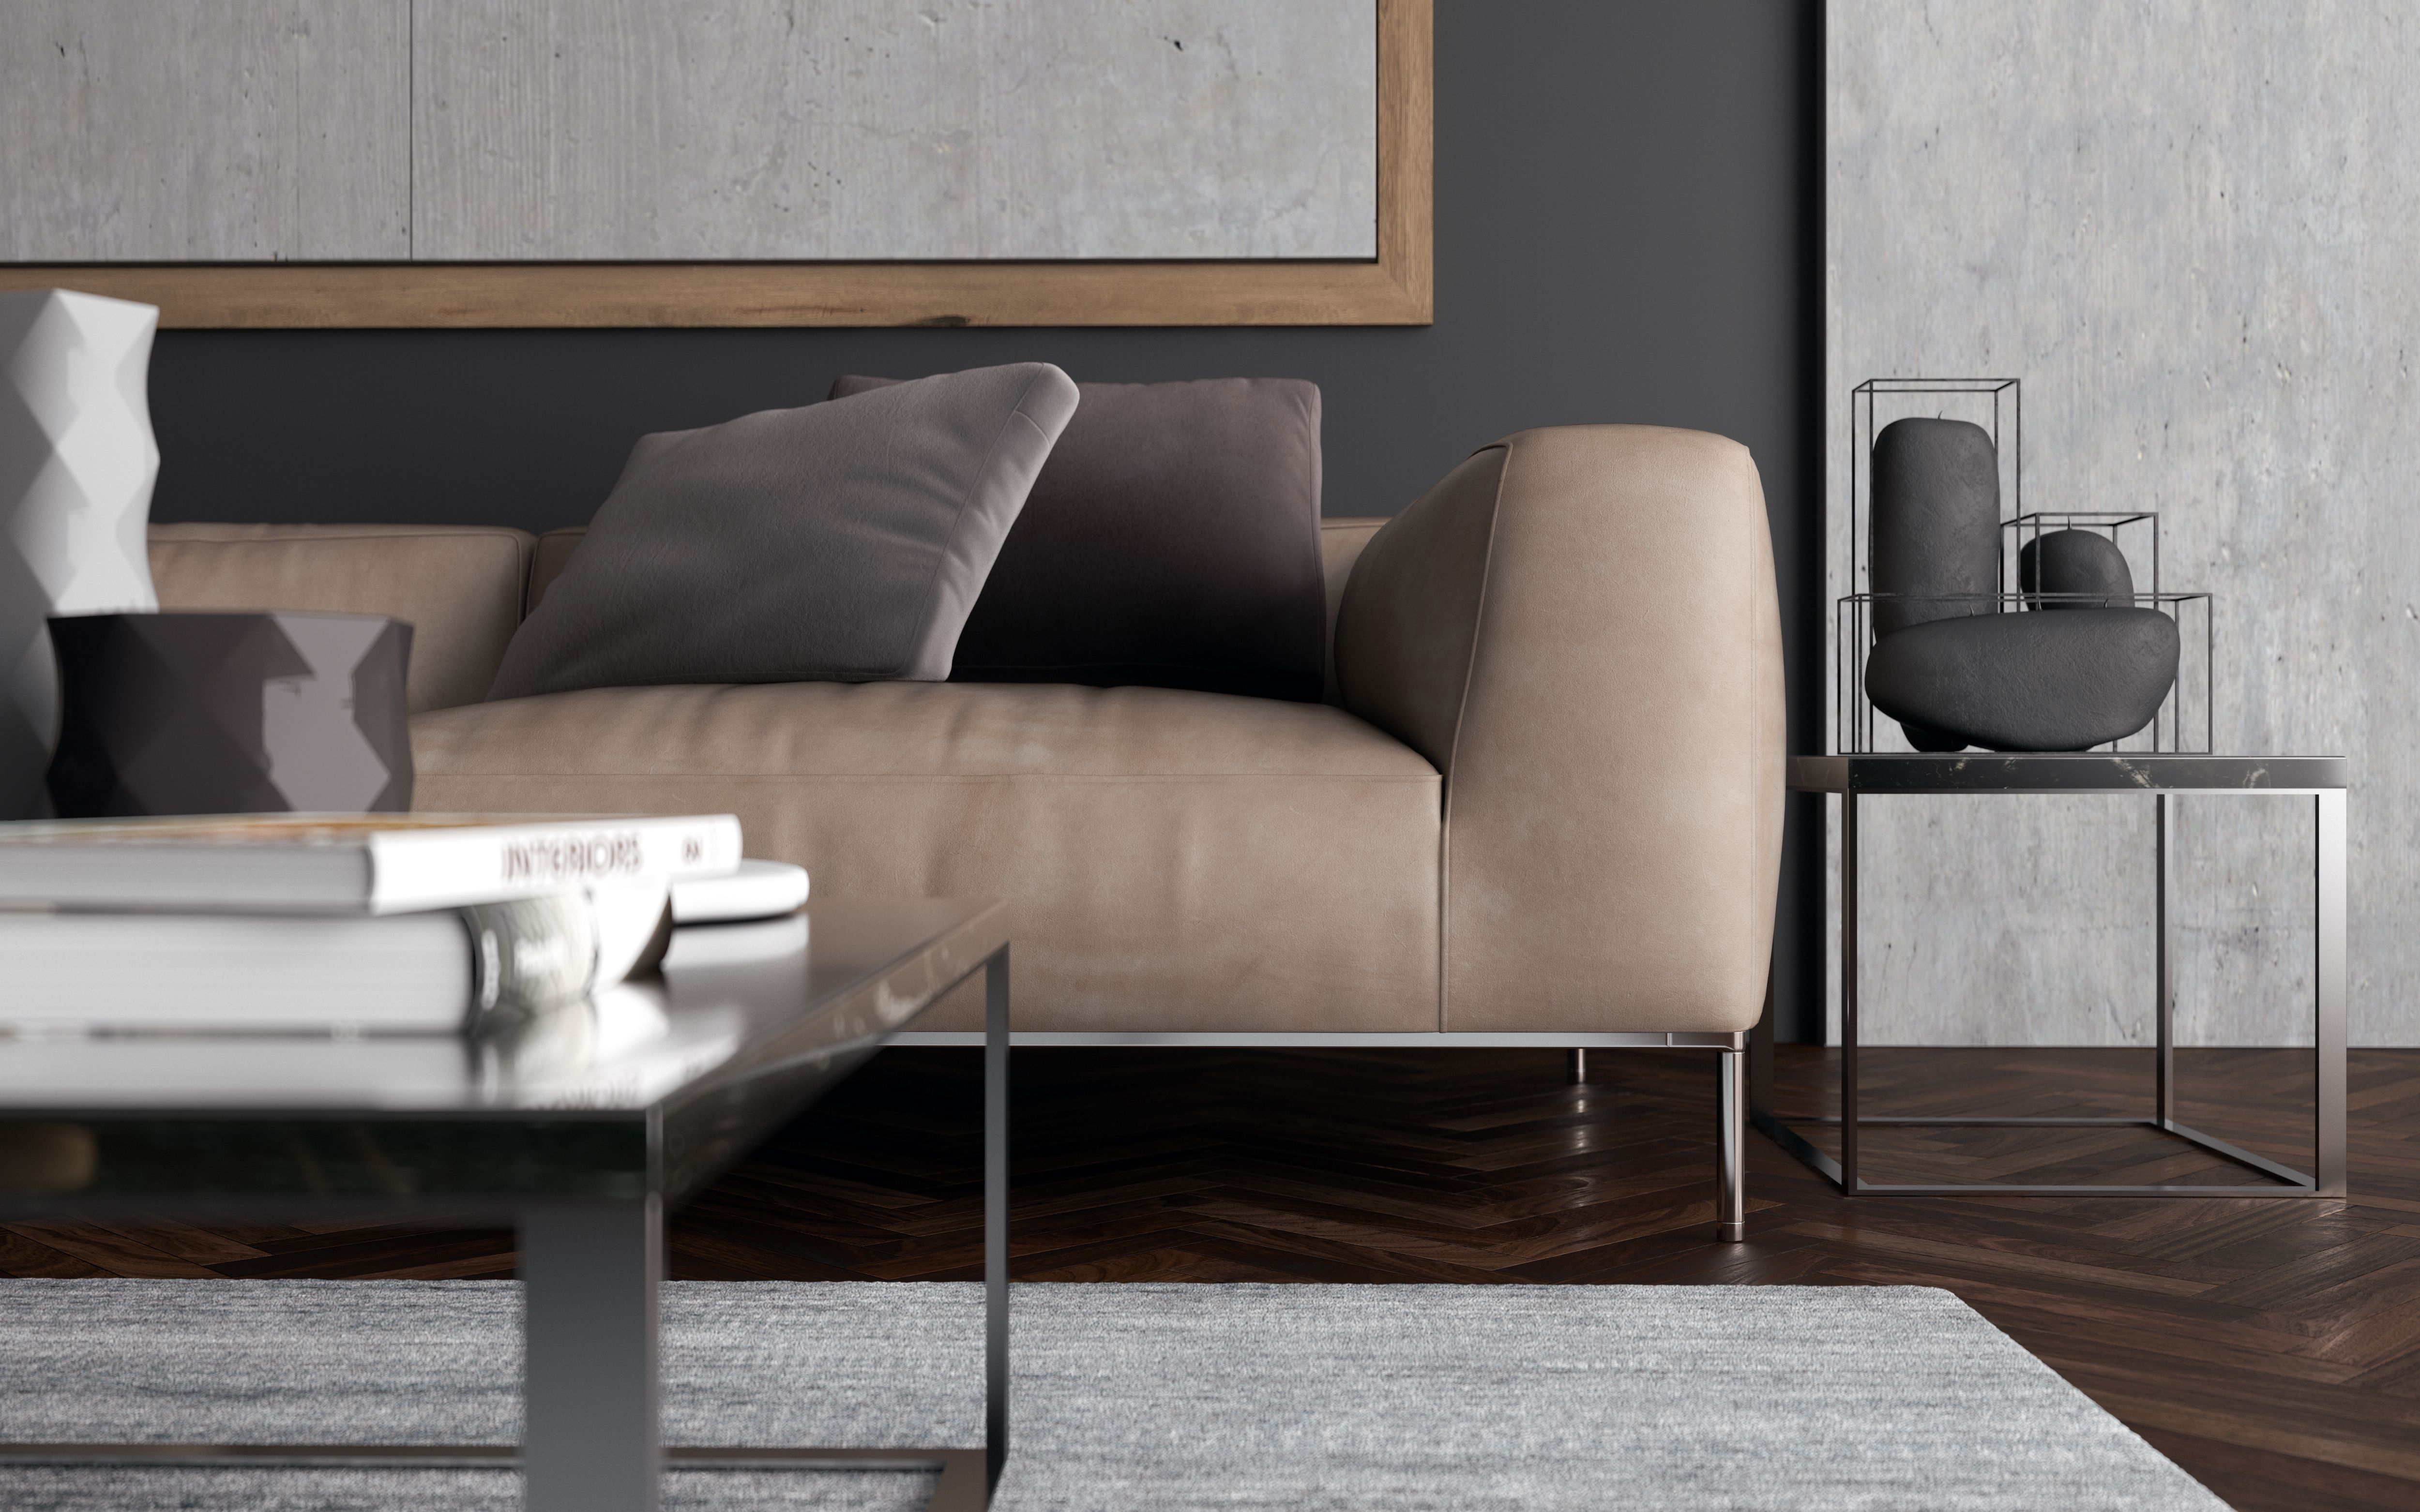 Frank Sofa B&B Italia [Render By Mfdesign]